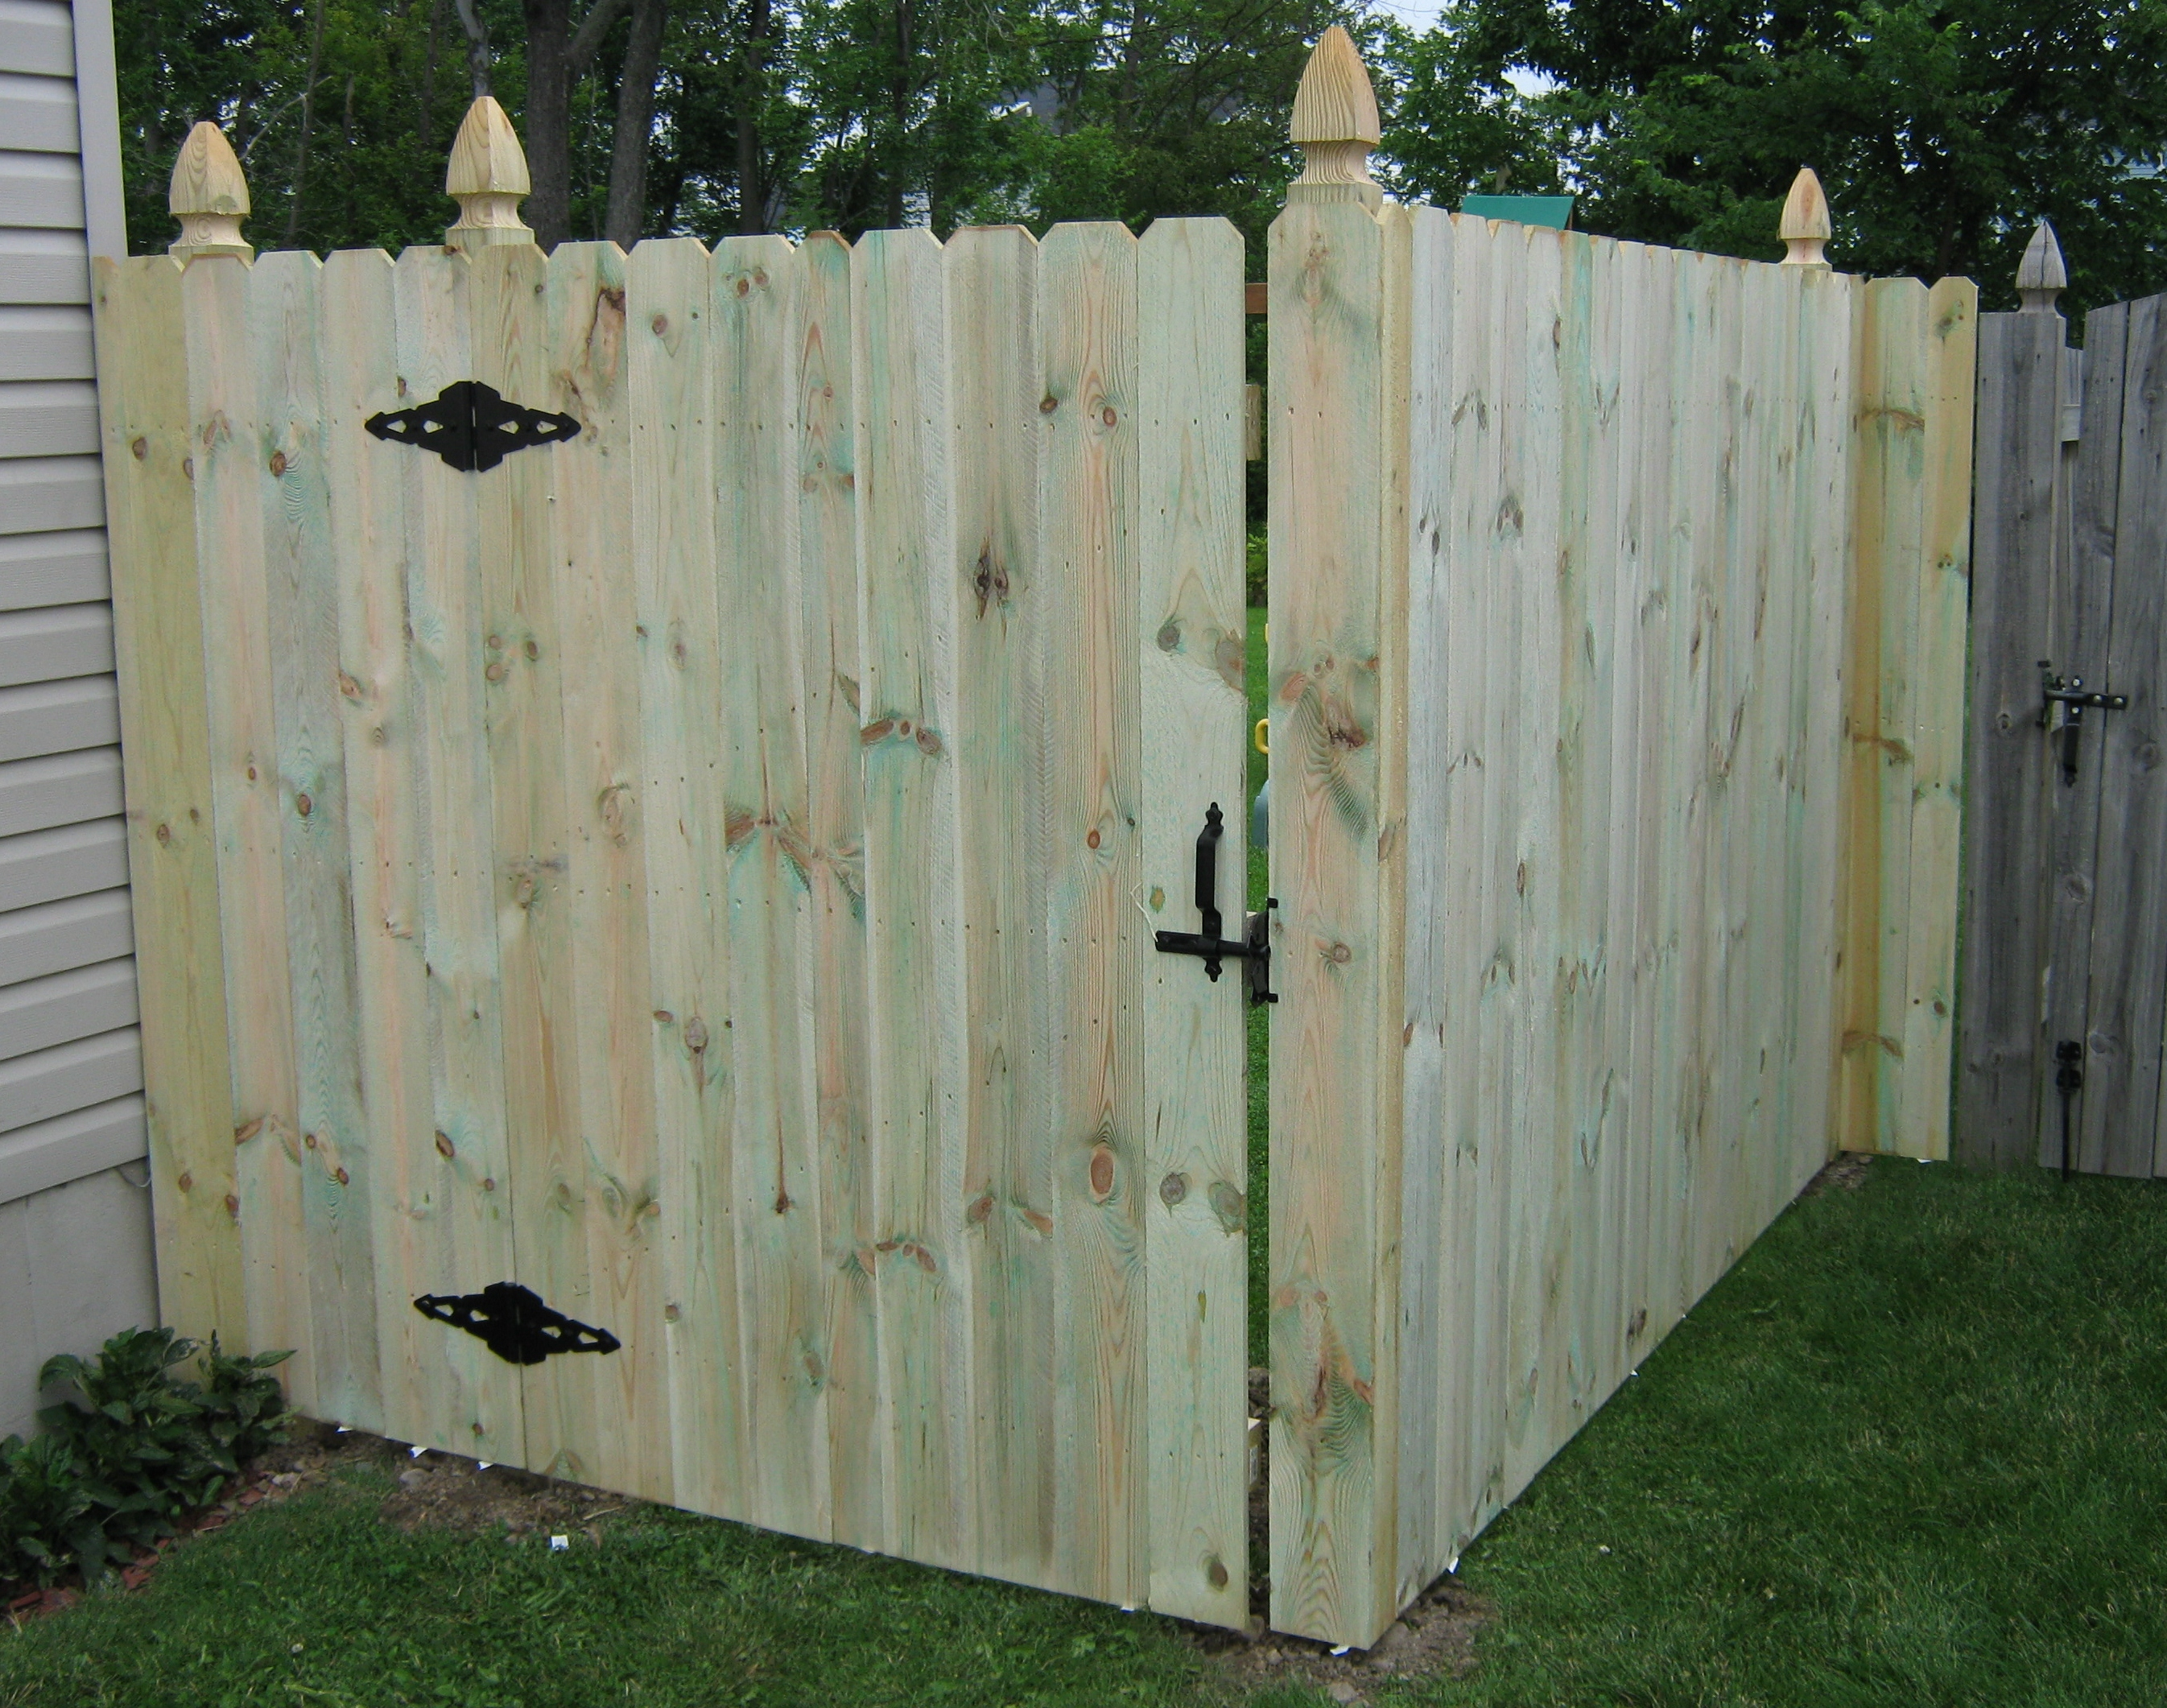 Pressure treated sadler fence and staining llc pressure treated wood baanklon Gallery